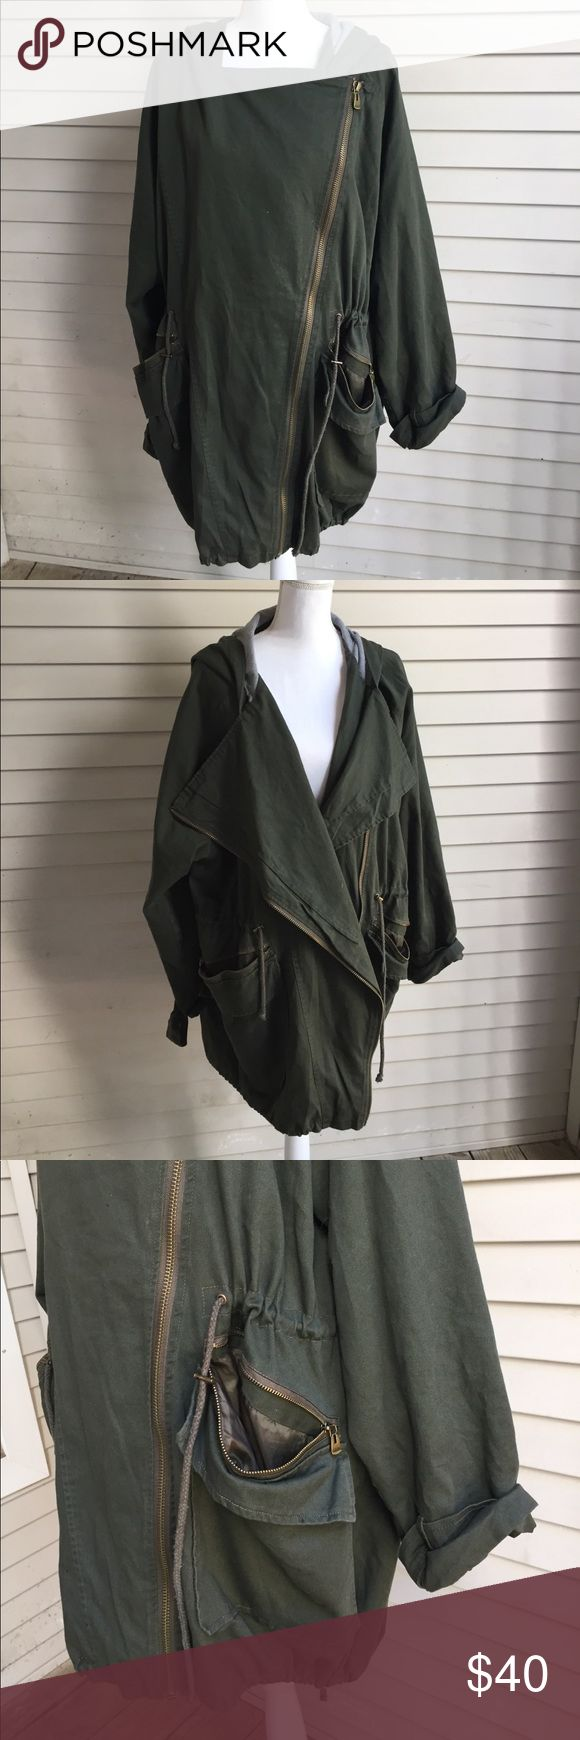 Asos Curve Army Green Hooded Jacket Will take measurements upon request! Great brand - great piece! Excellent condition ASOS Curve Jackets & Coats